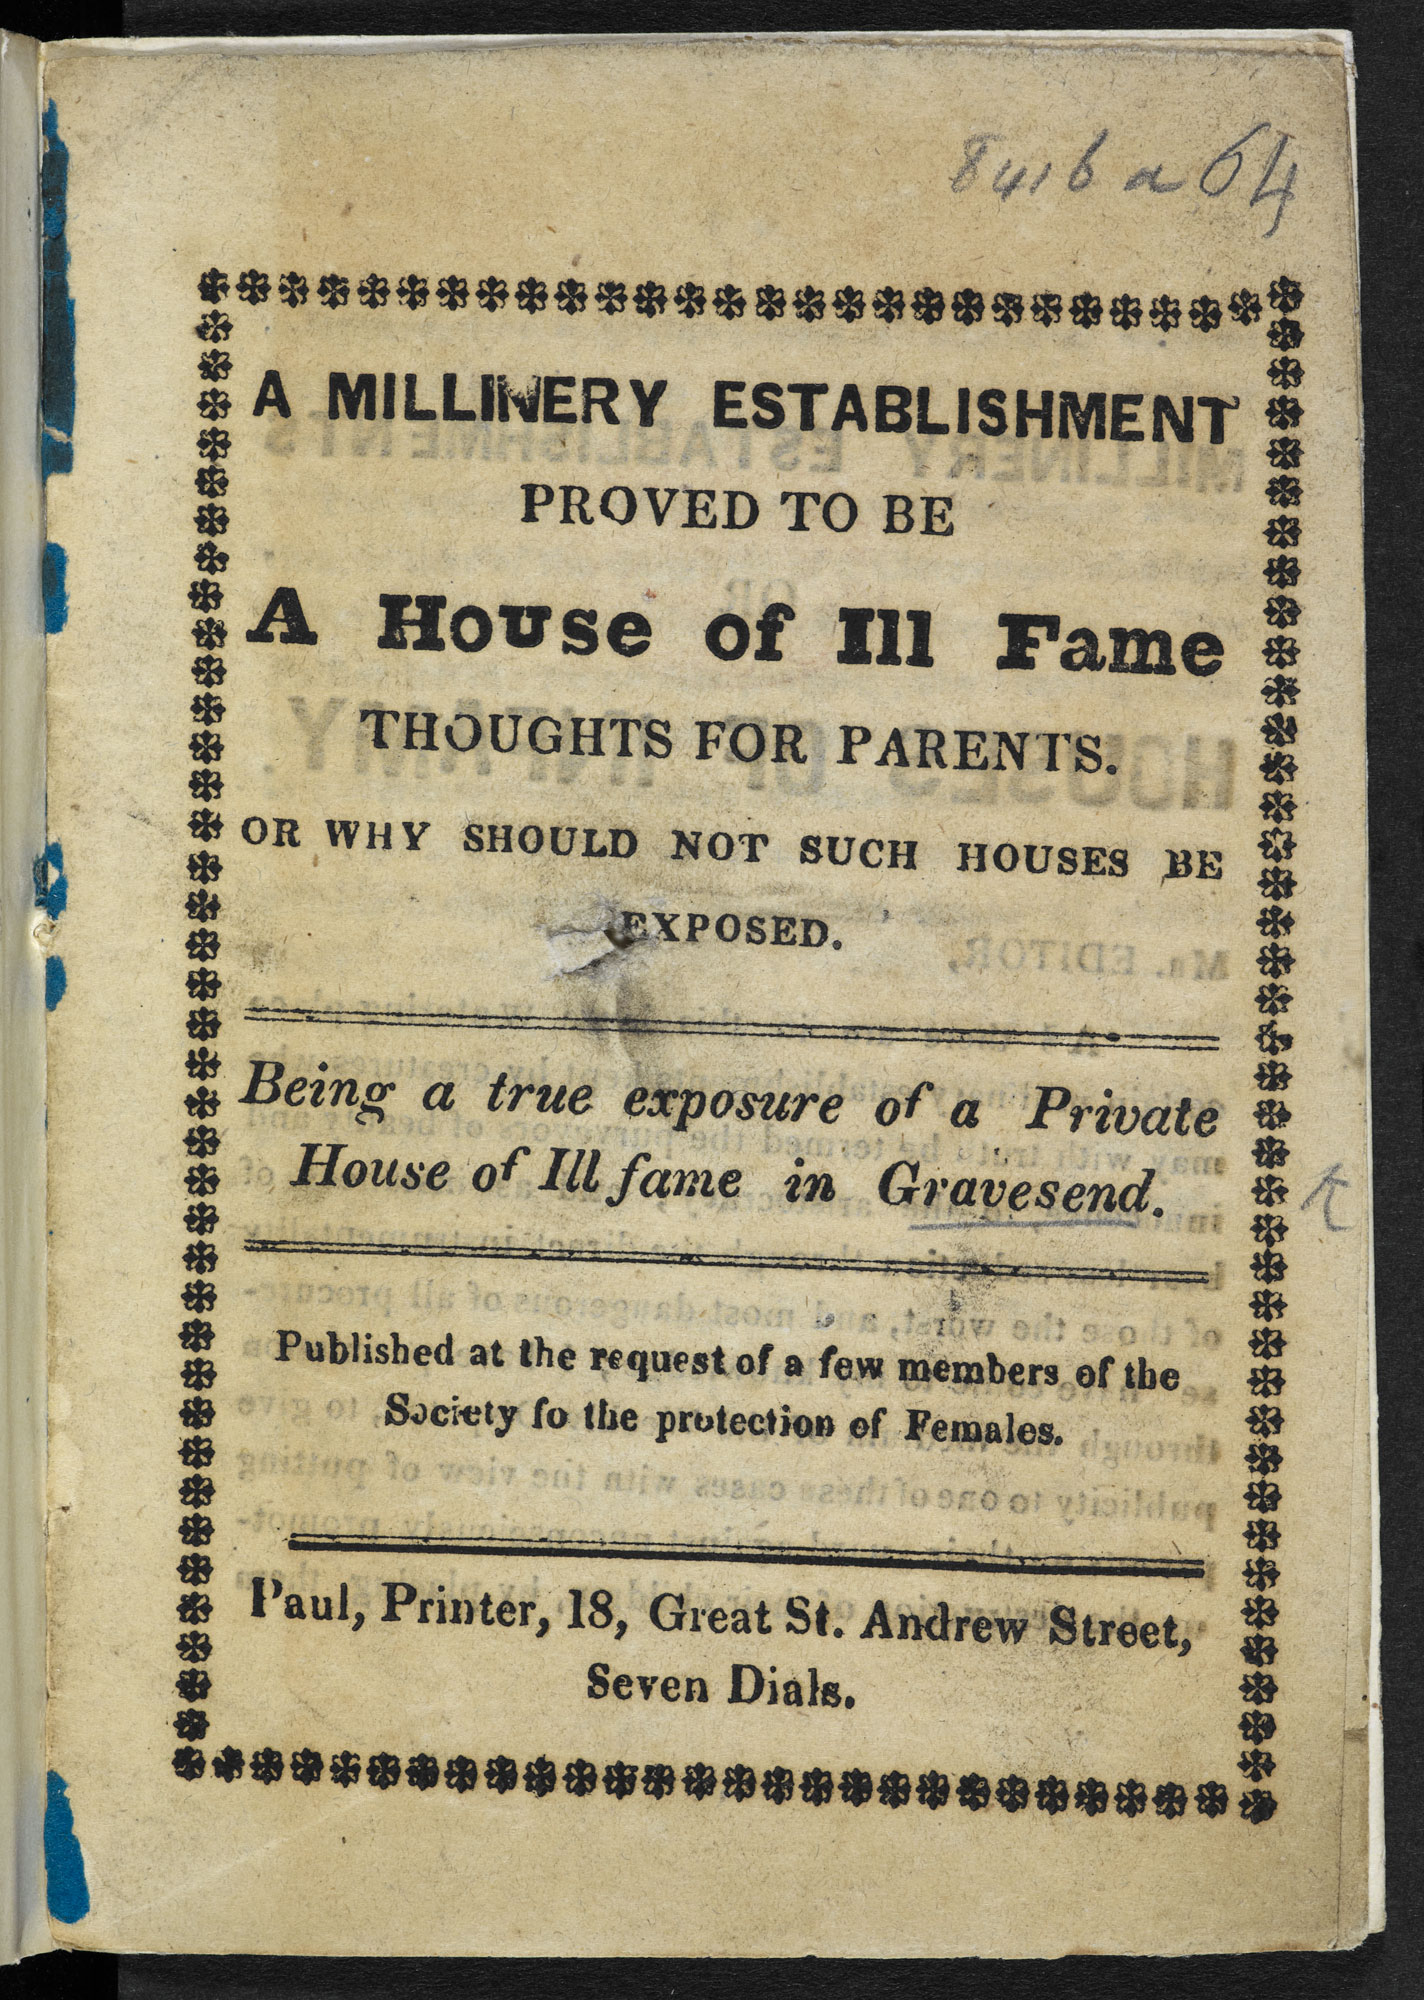 A Millinery Establishment proved to be a House of Ill Fame [page: title page]